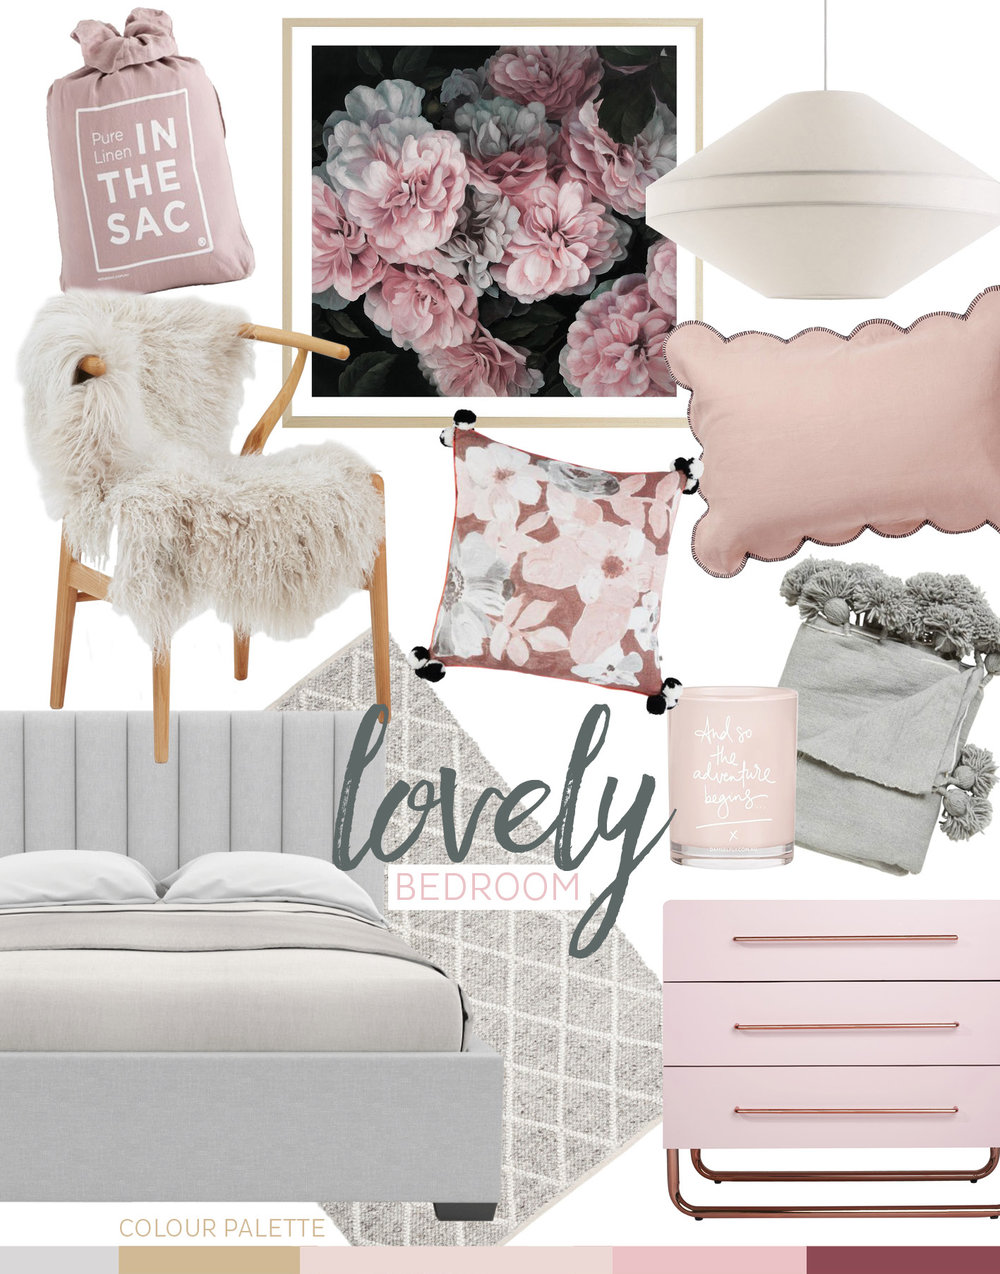 1adore_home_blog_lovely_bedroom_soft_pink_blush_grey_scandi_floral_pretty.jpg